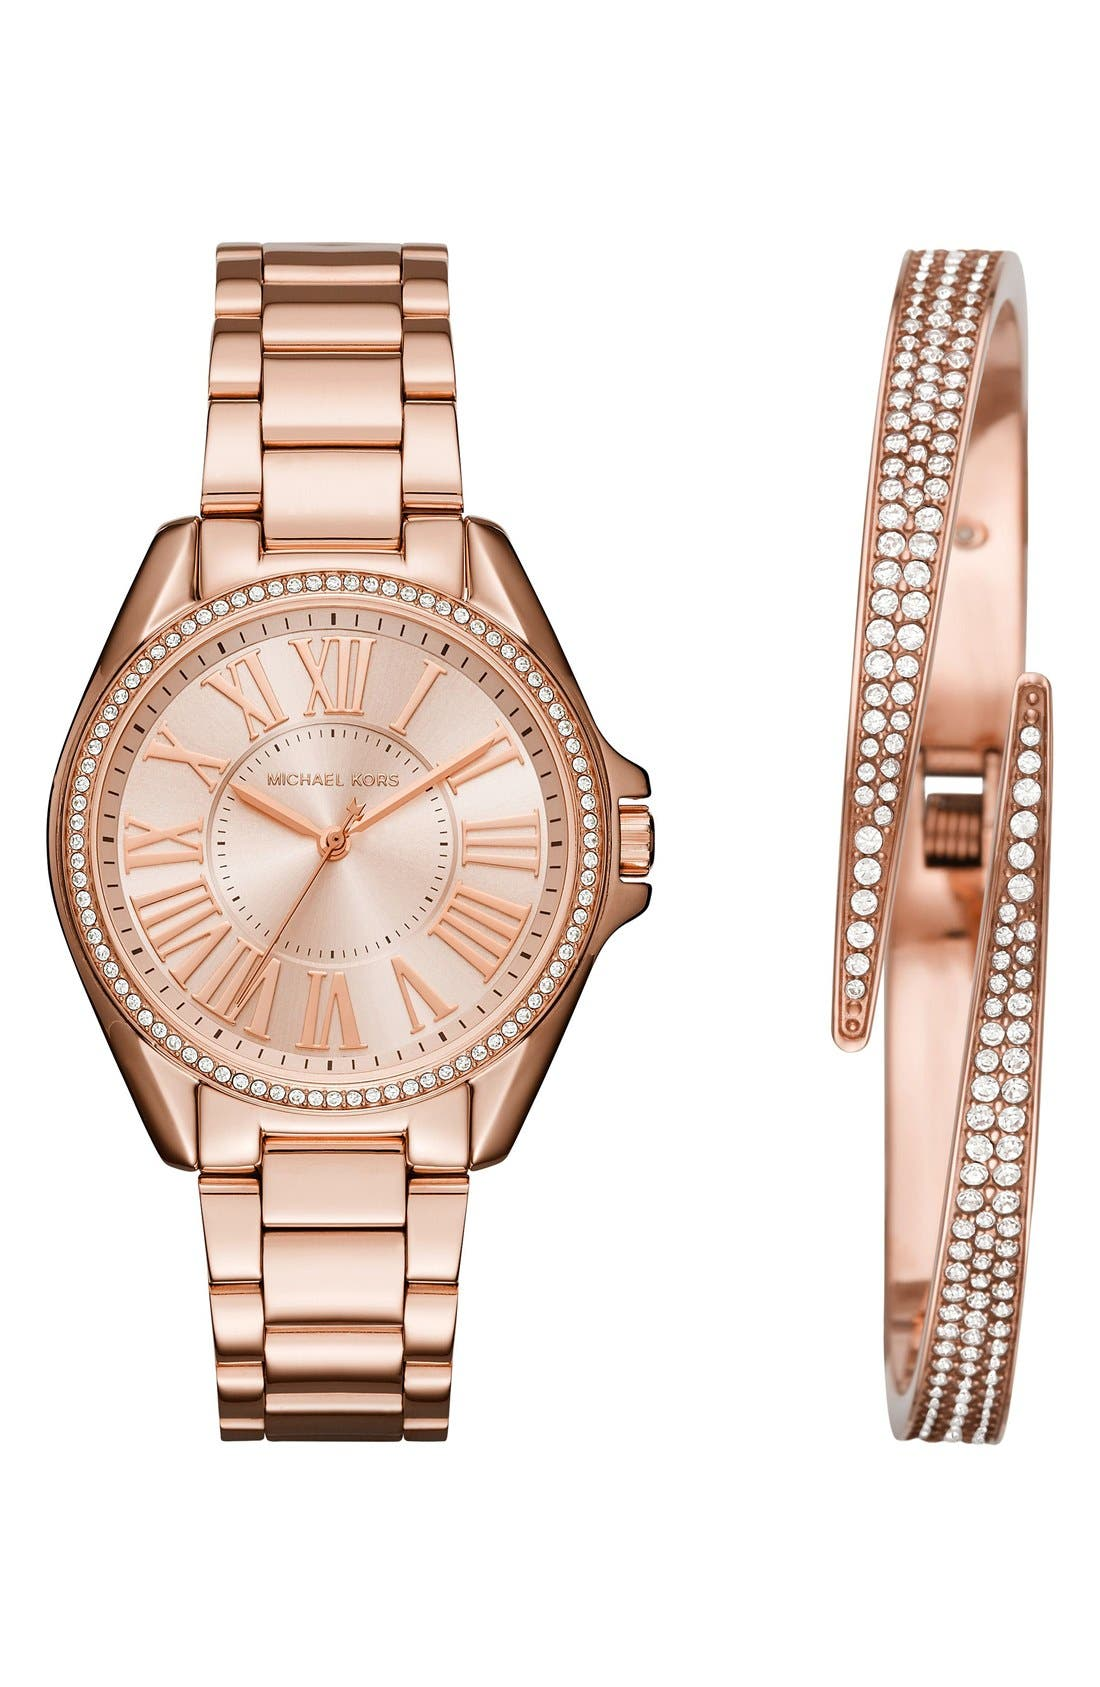 Main Image - Michael Kors Bracelet Watch & Bangle Set, 39mm